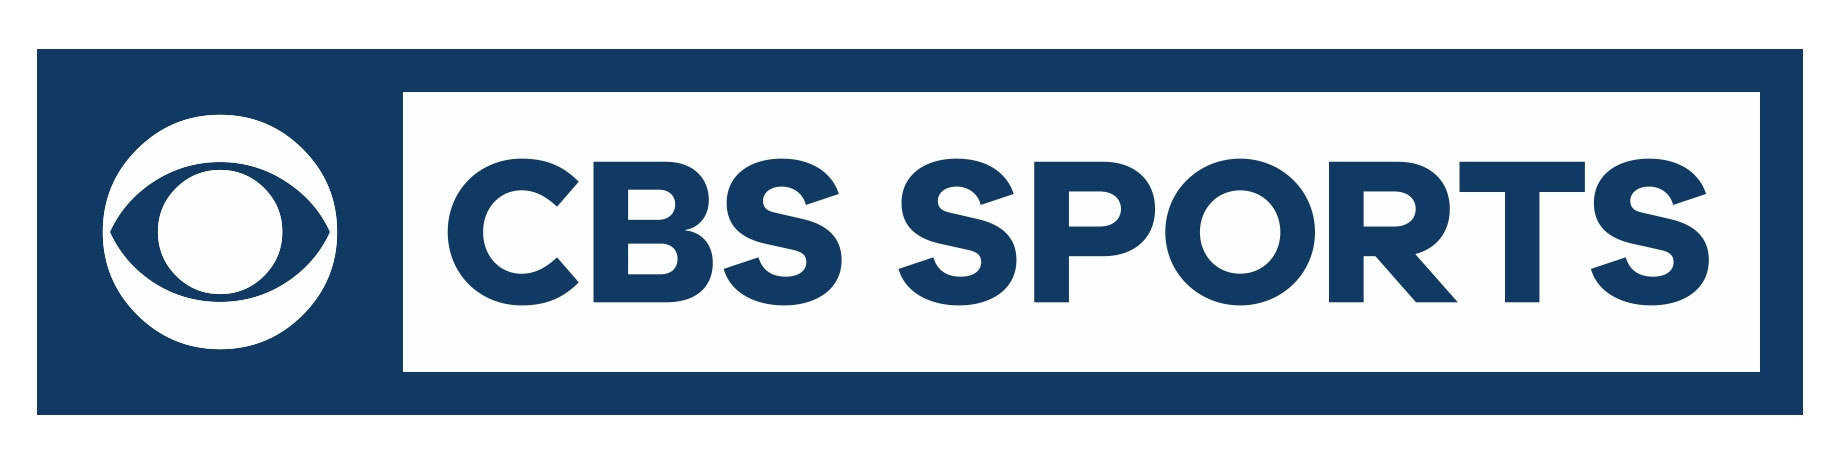 Cbs Sports And Nickelodeon Team Up For Nfl Wild Card Game On Nickelodeon Special Slime Filled Telecast Tailored For Family Fun Airing Sunday Jan 10 Business Wire